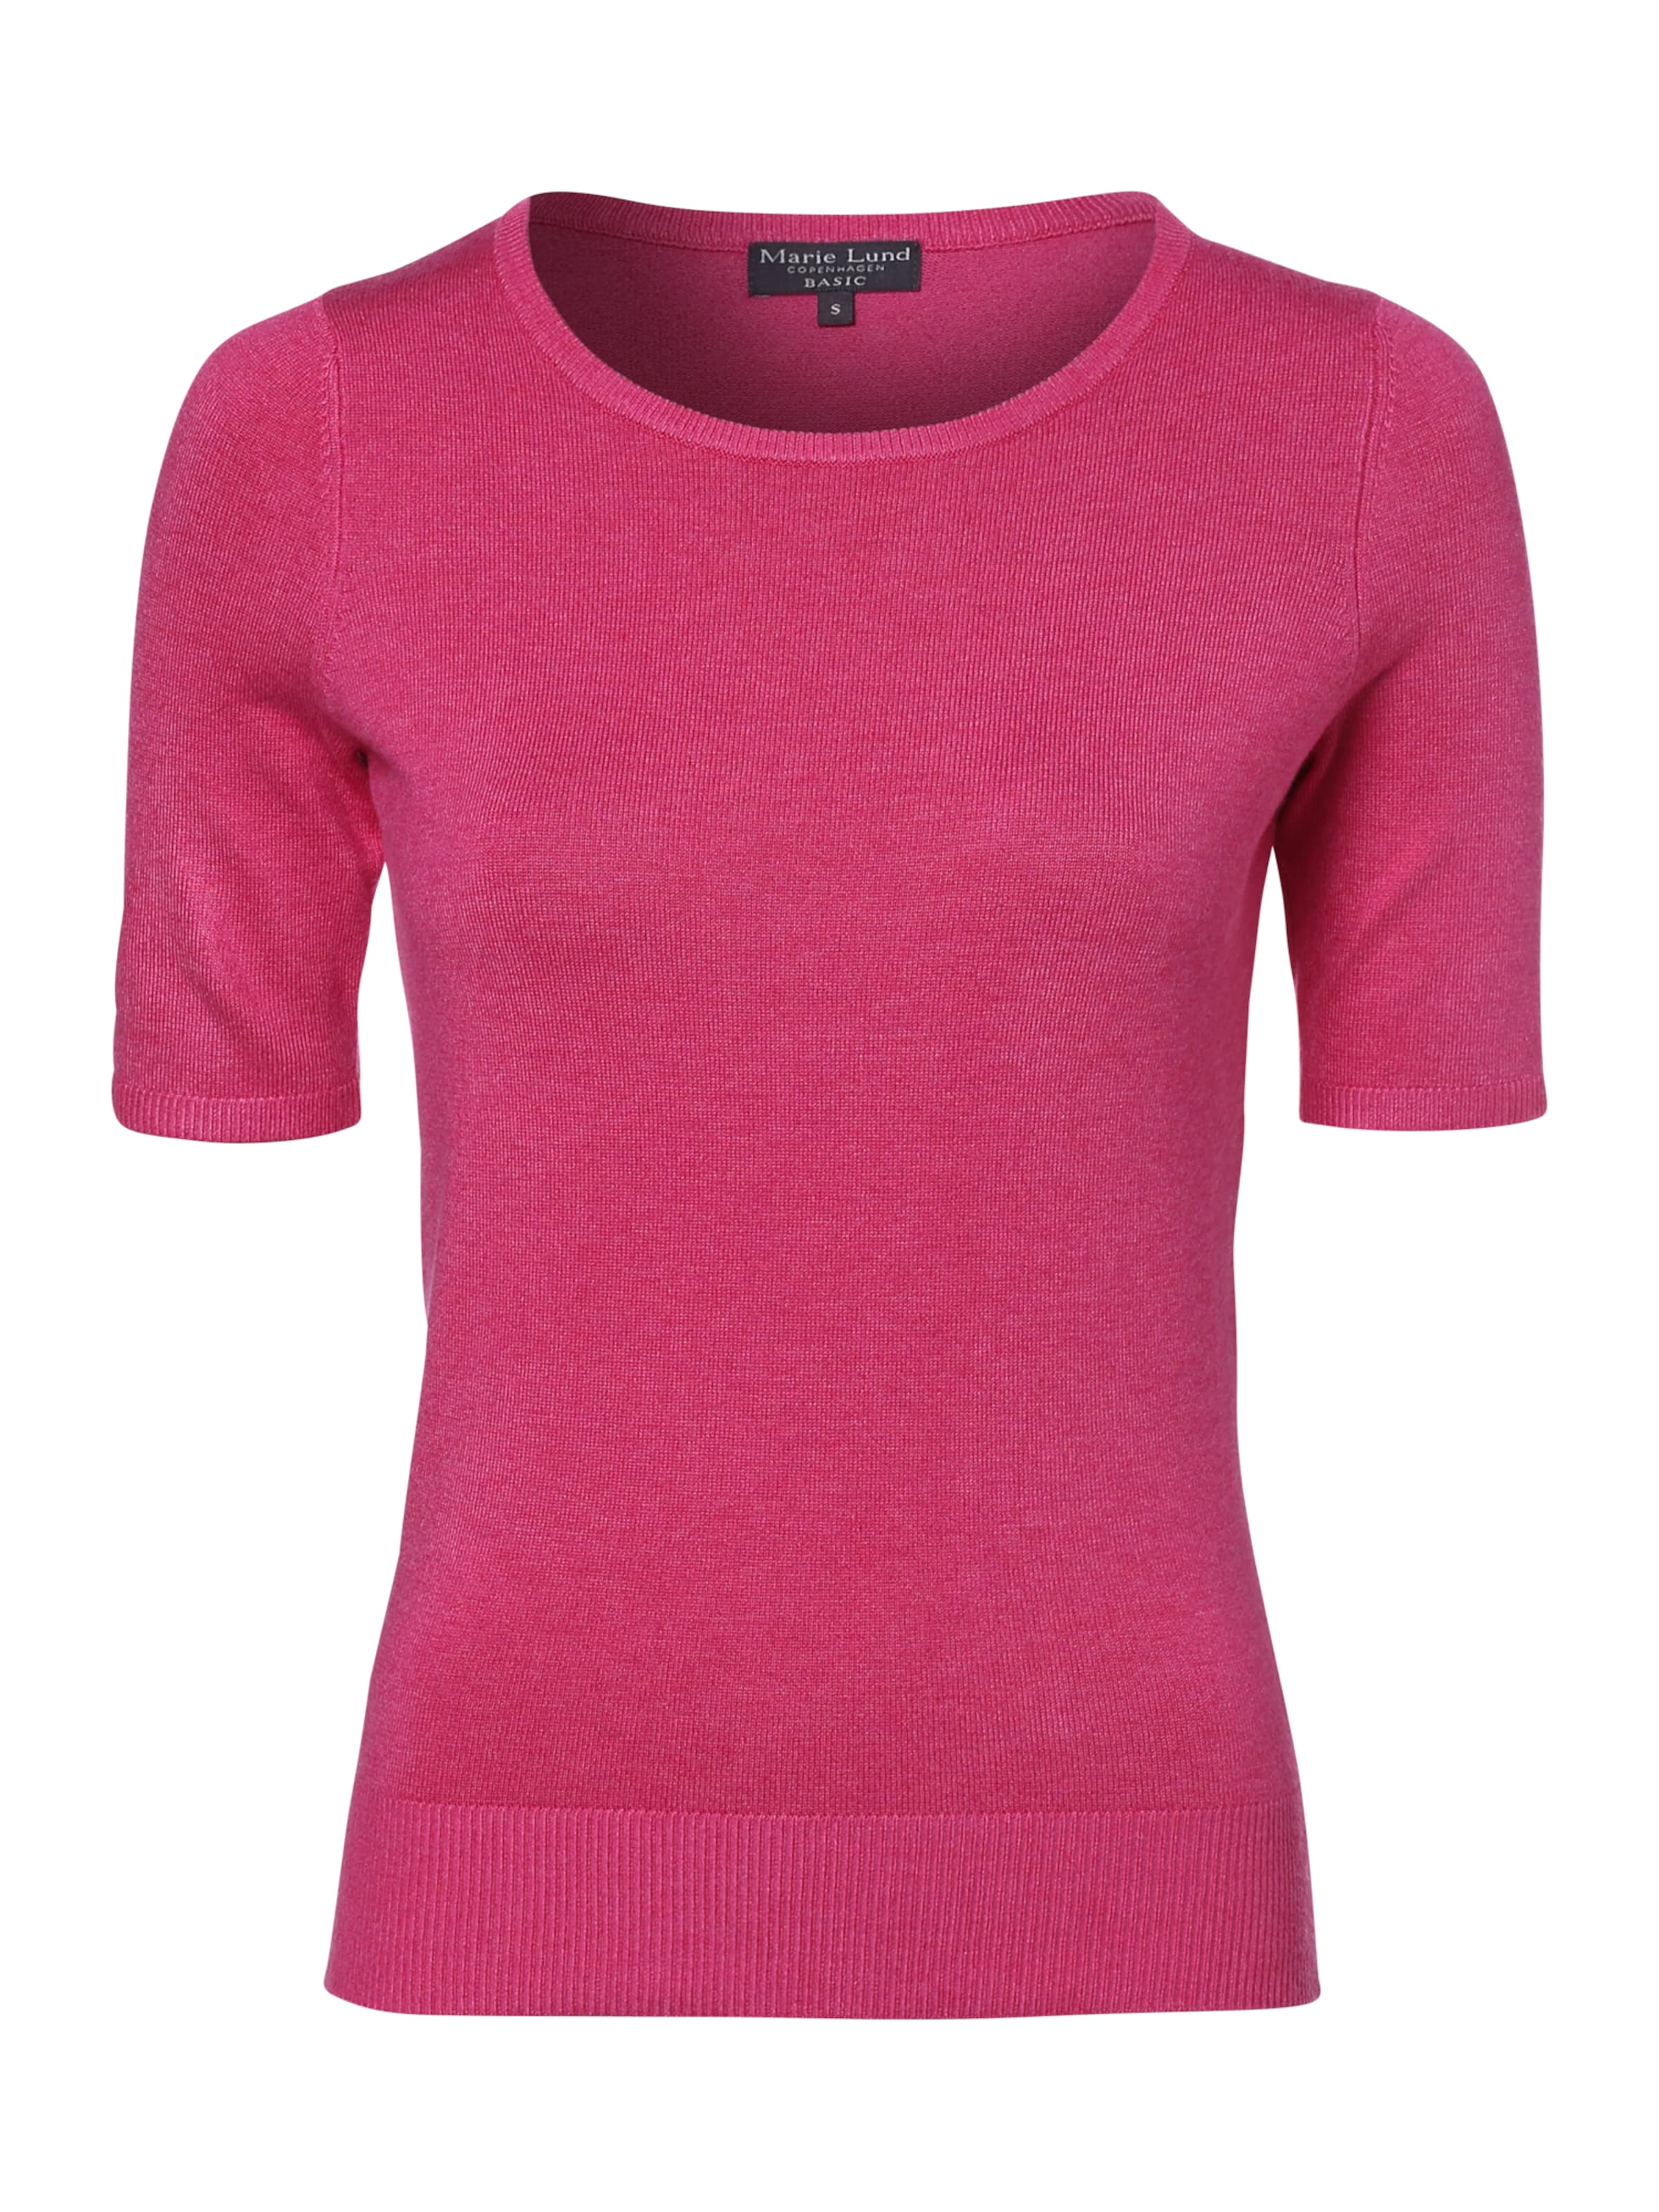 Marie Pullover Lund Pink Lund In Pullover In Marie deWrCBox